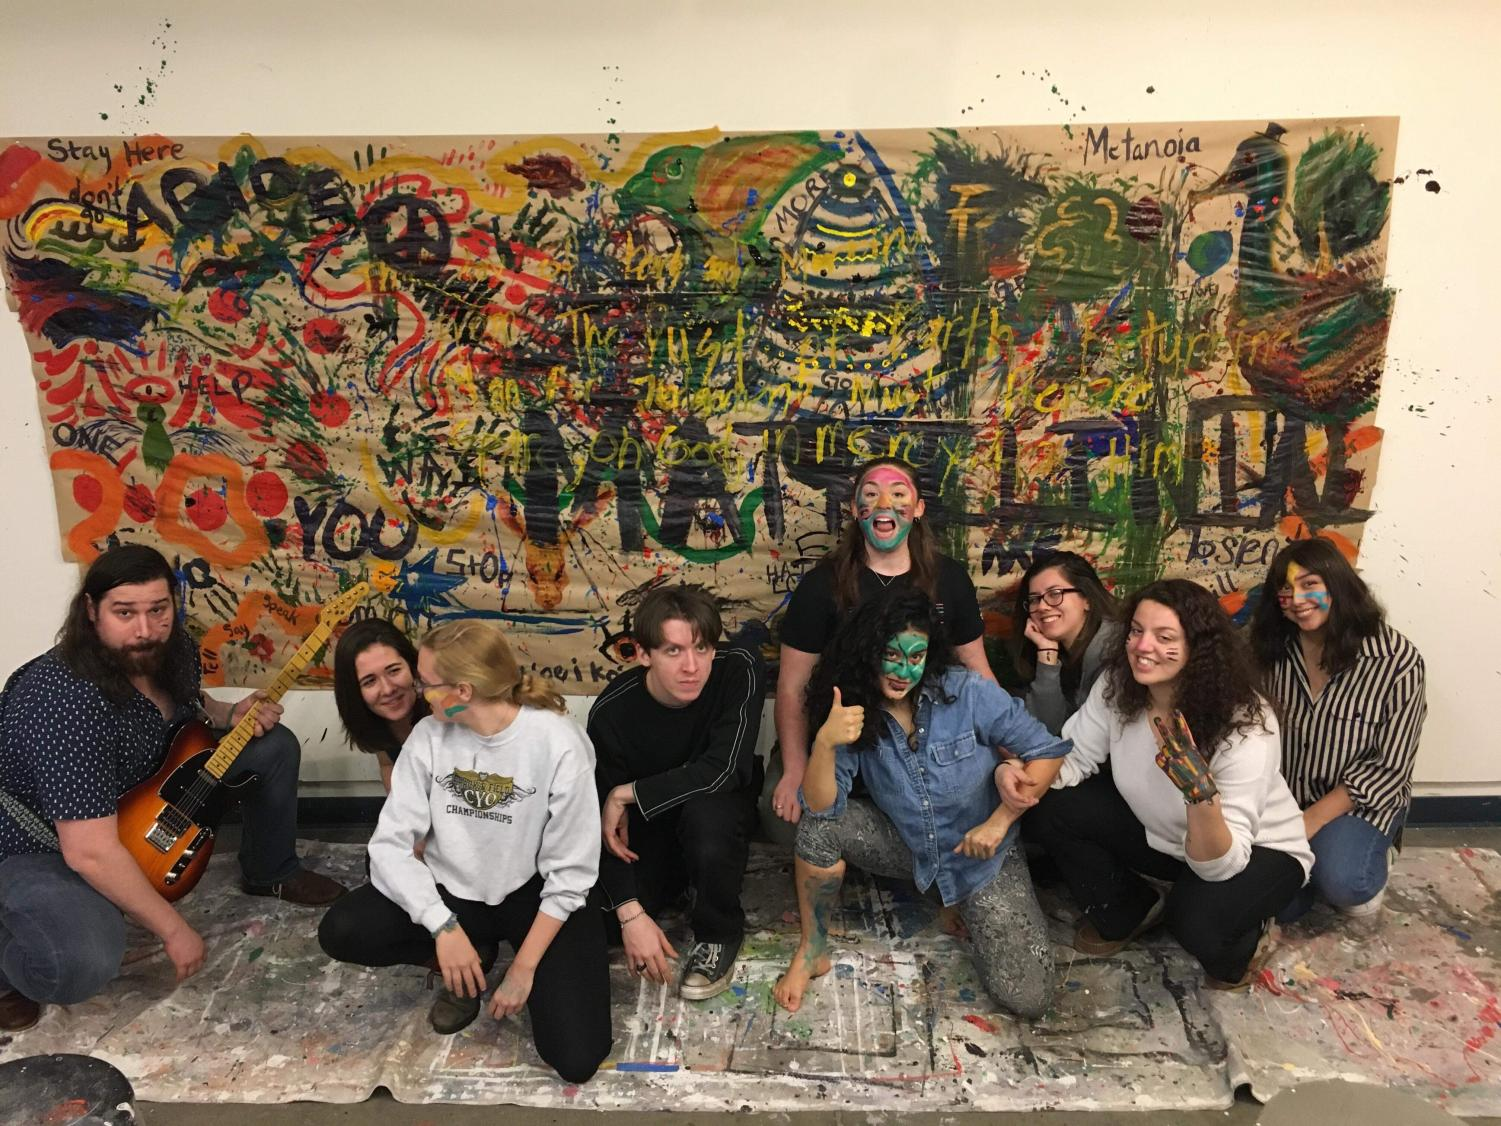 The friday night art group poses in front of their artwork, the result of a directive painting activity.